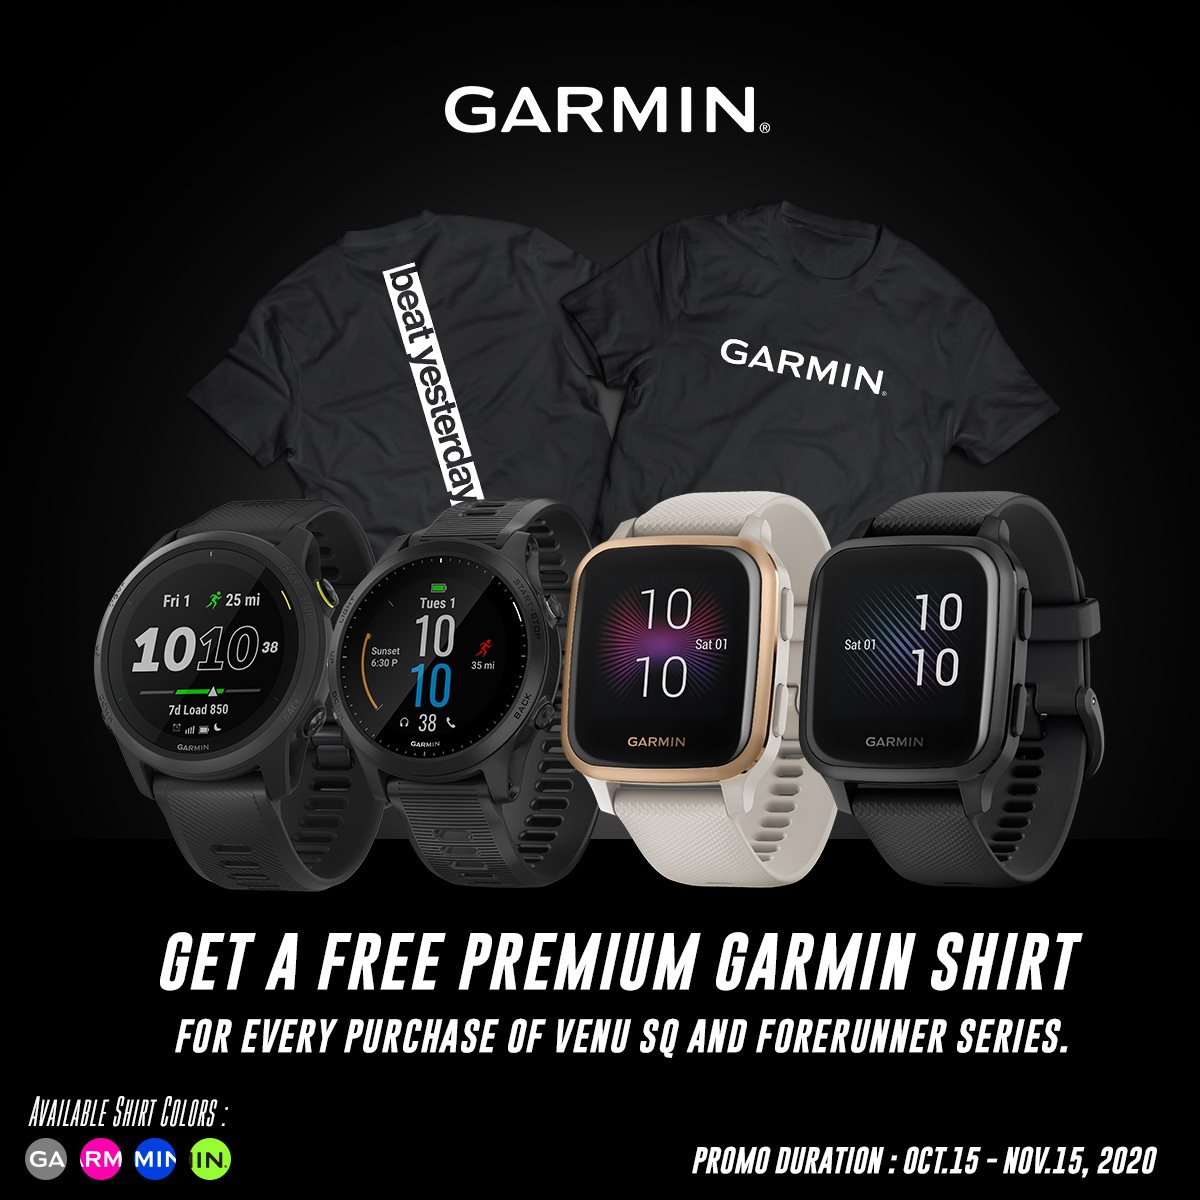 Here's a Treat For You! 🌟 Get a limited & exclusive Garmin #BeatYesterday Drifit Shirt for FREE when you purchase a Venu Sq, Venu Sq Music, or any Garmin GPS smartwatch from the Forerunner Collection